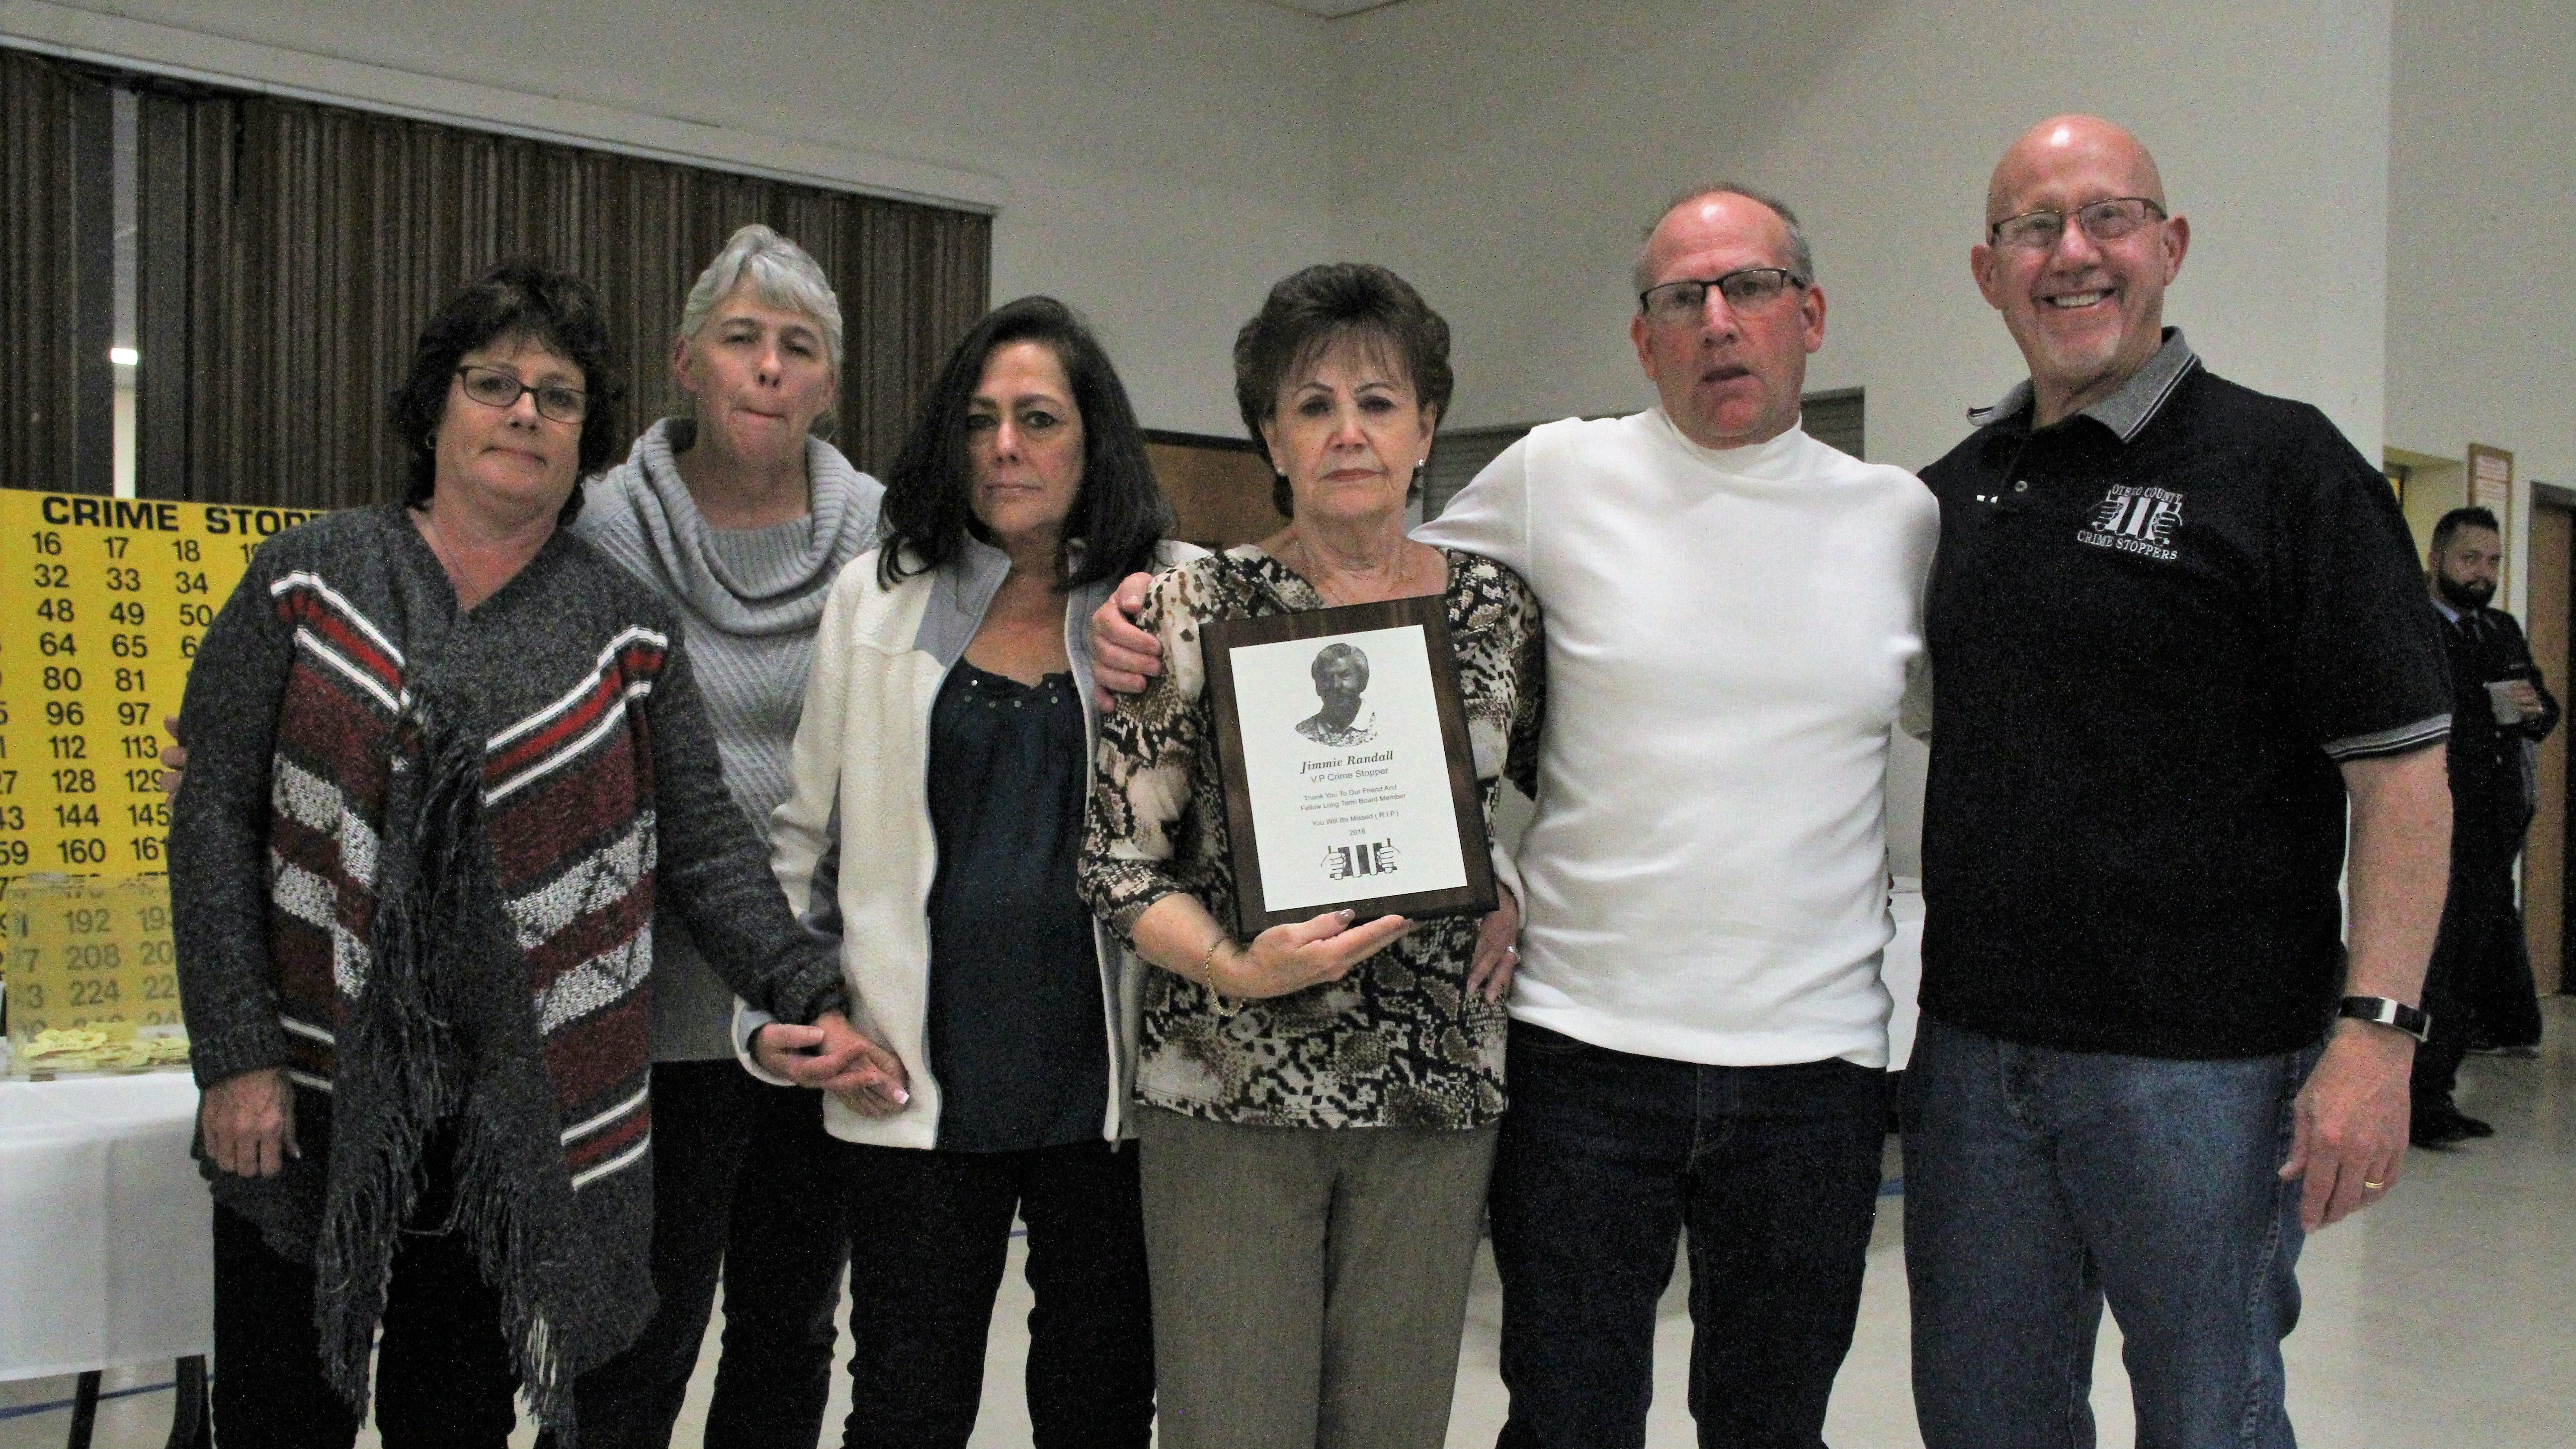 Jimmie Randall's wife, Juanita, center, holds a plaque honoring Jimmie at the Otero County Crime Stoppers fundraiser Oct. 20. Pictured from left to right are Tiffany Carnes, Tonya Sanchez, Cheryl Woods, Juanita,  Tom Thompson and Crime Stopper Board Member Steve Muell.